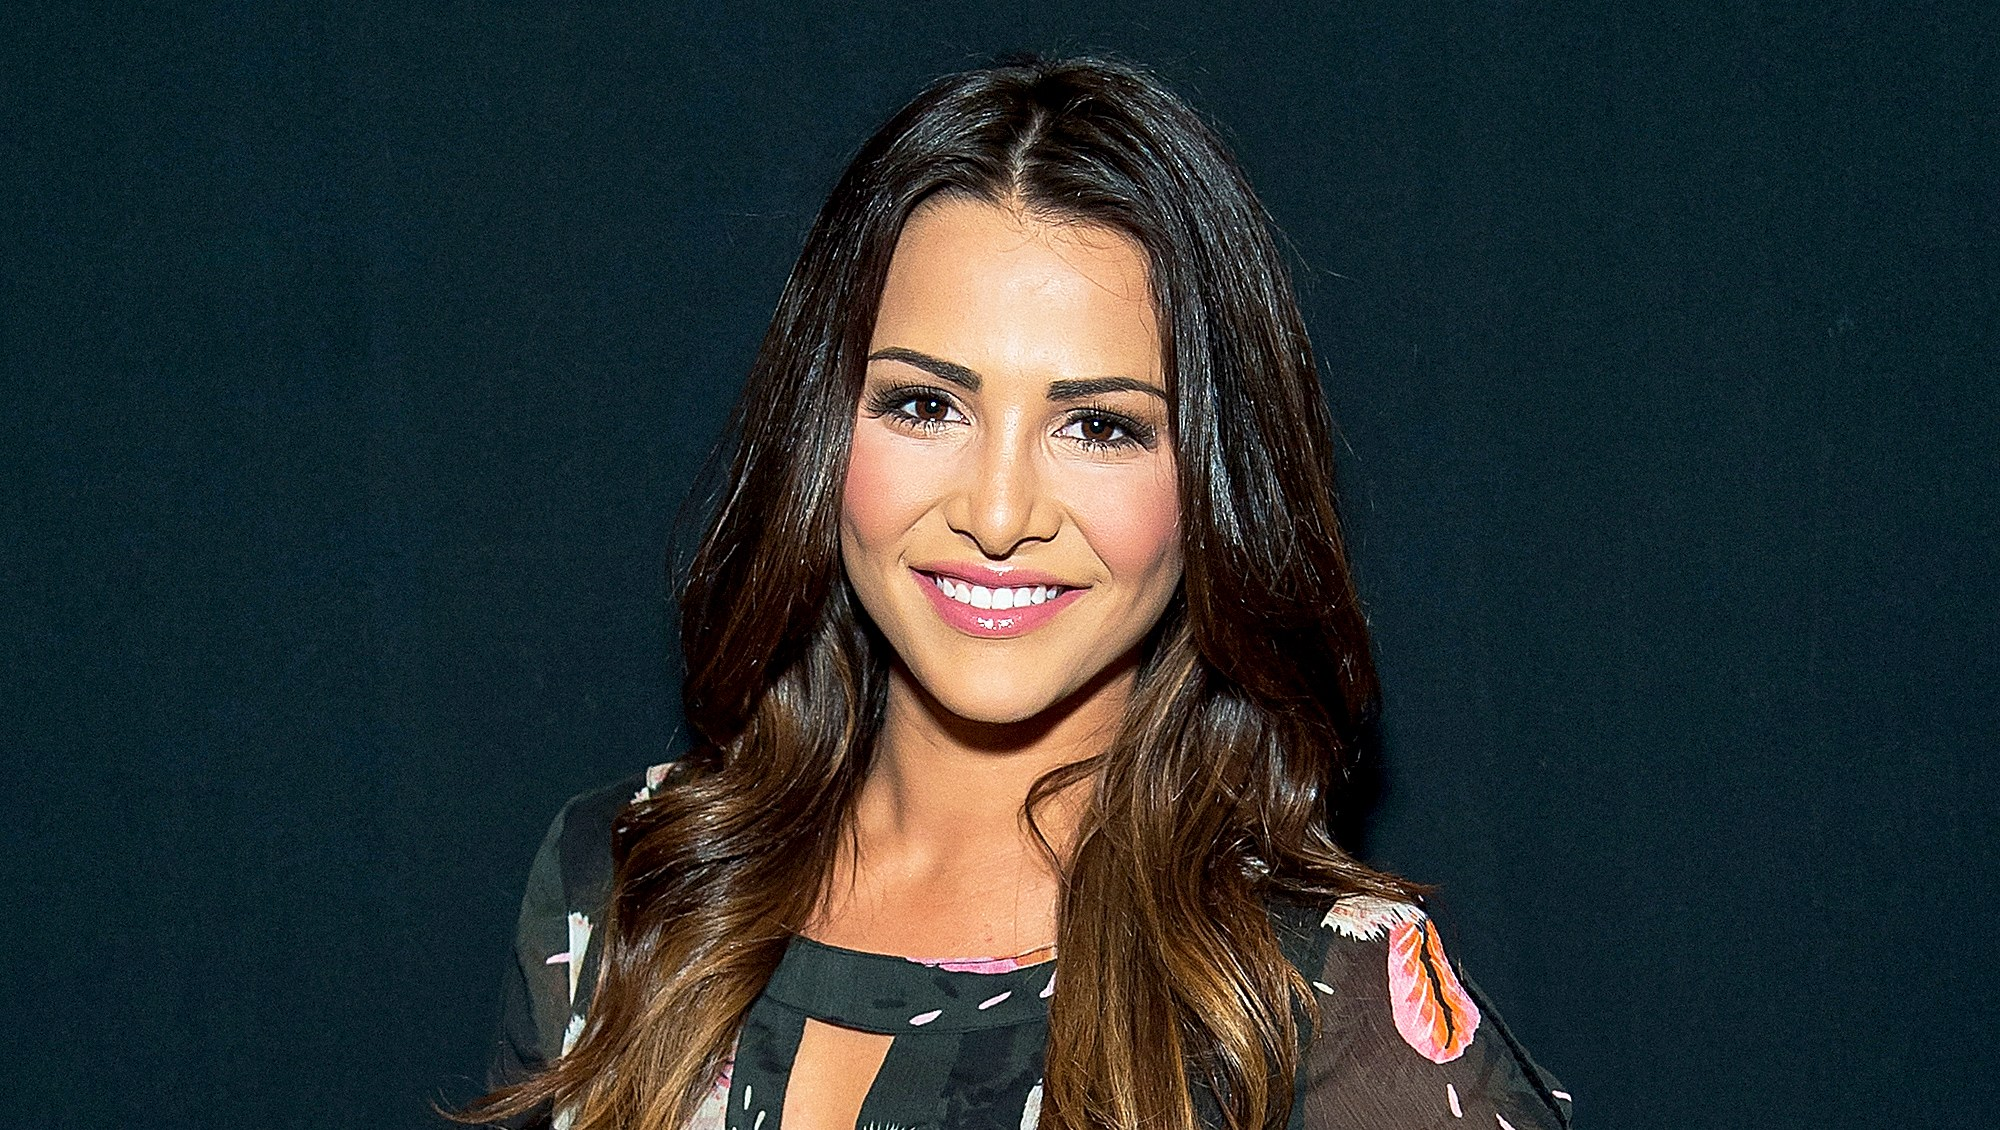 Andi Dorfman attends the Desigual fashion show during September 2016 New York Fashion Week at The Arc, Skylight at Moynihan Station in New York City.